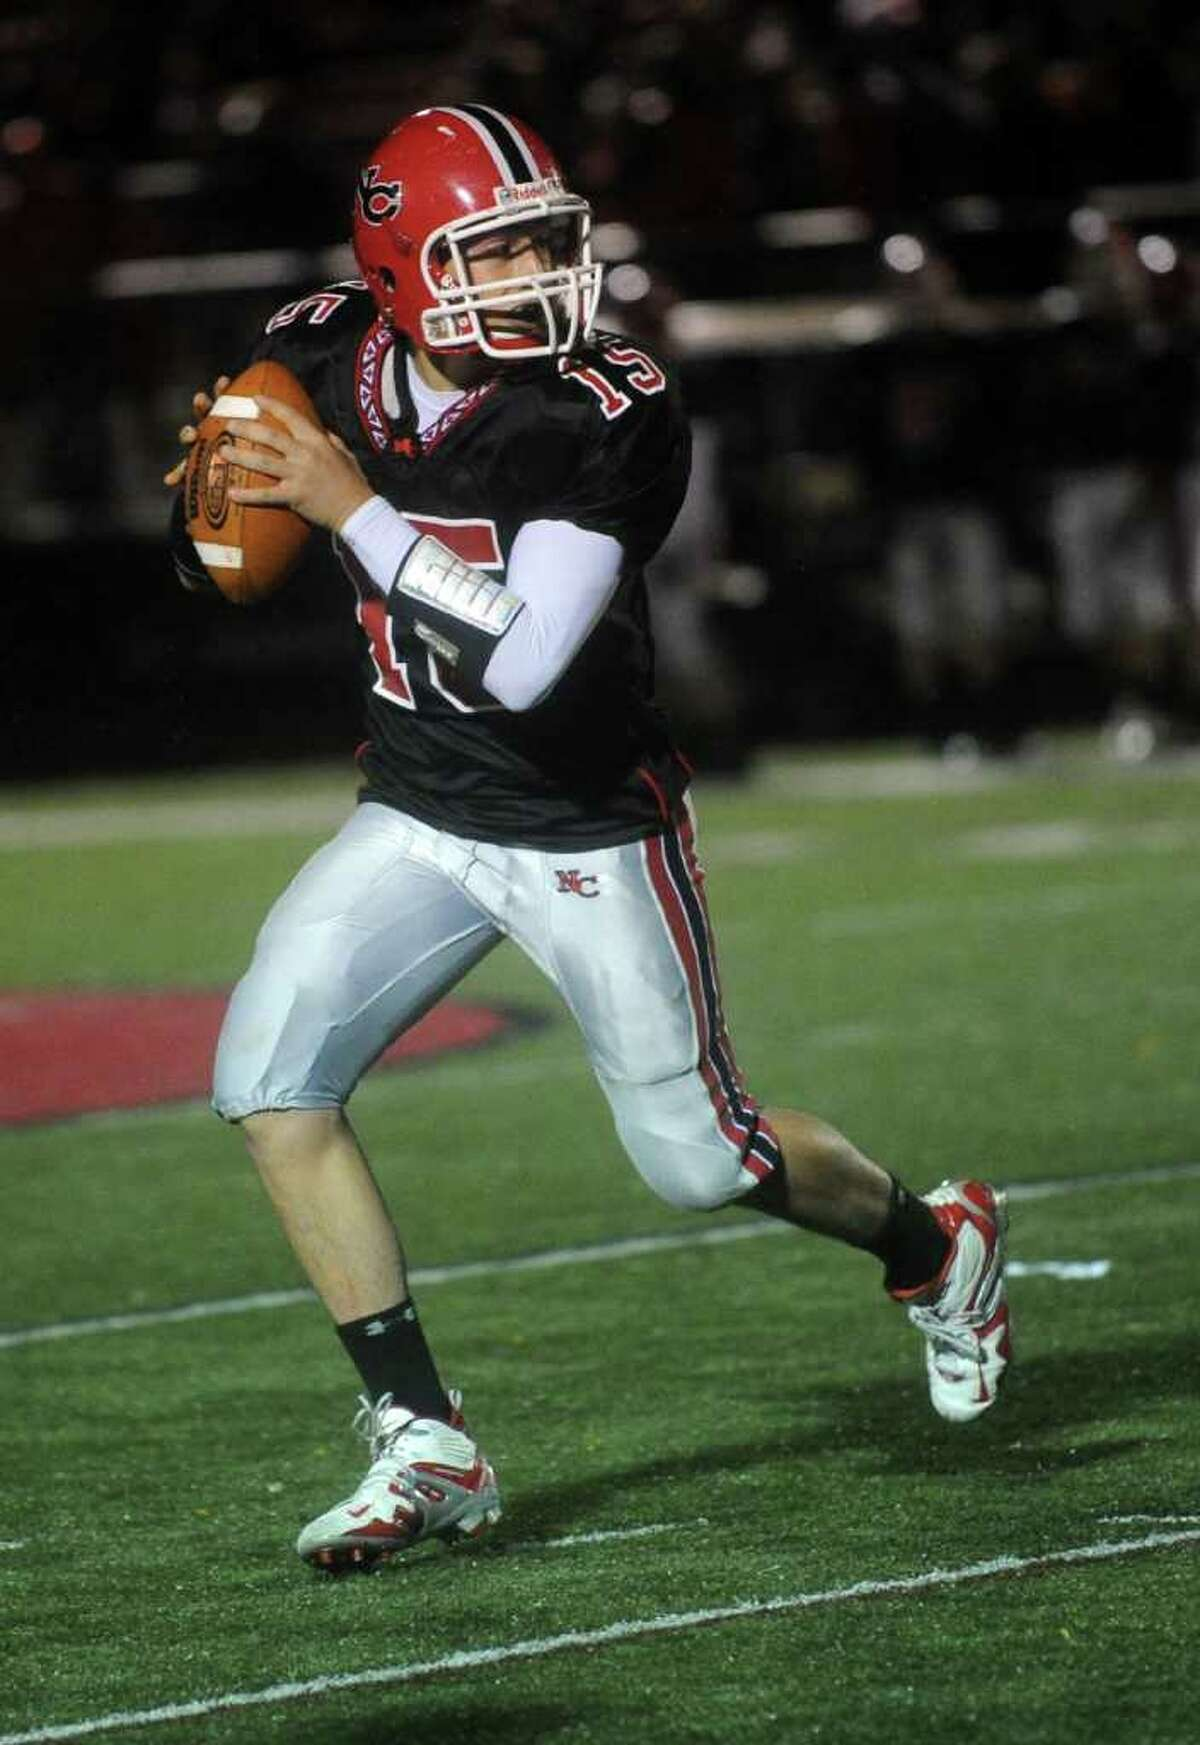 New Canaan quarterback Matt MIlano during Friday's game against Seymour at New Canaan High School on October 15, 2010.